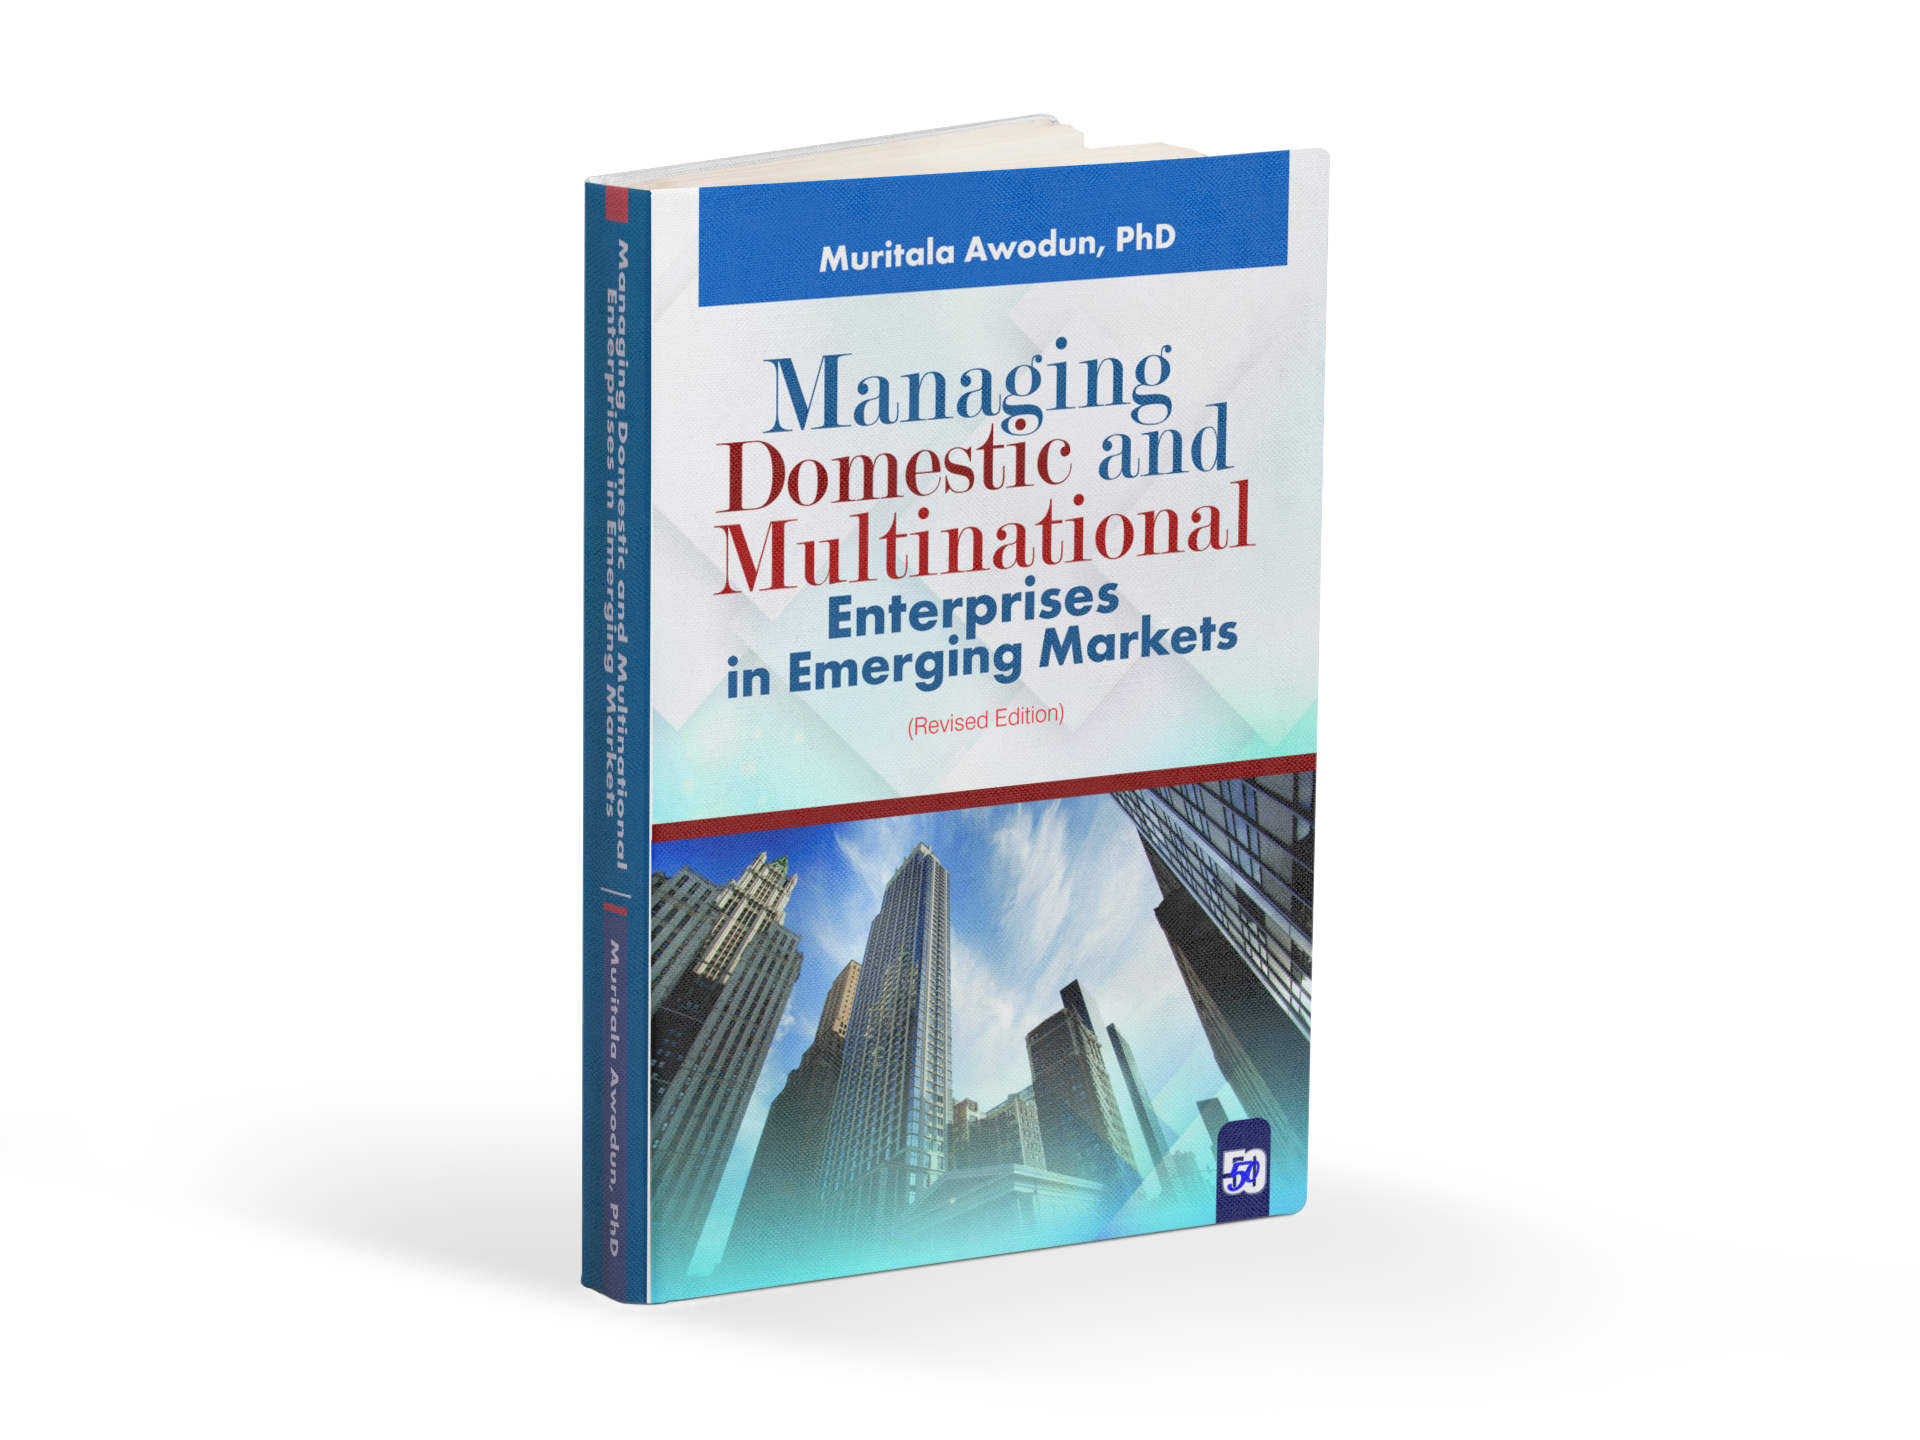 Managing Domestic and Multinational Enterprises in Emerging Markets